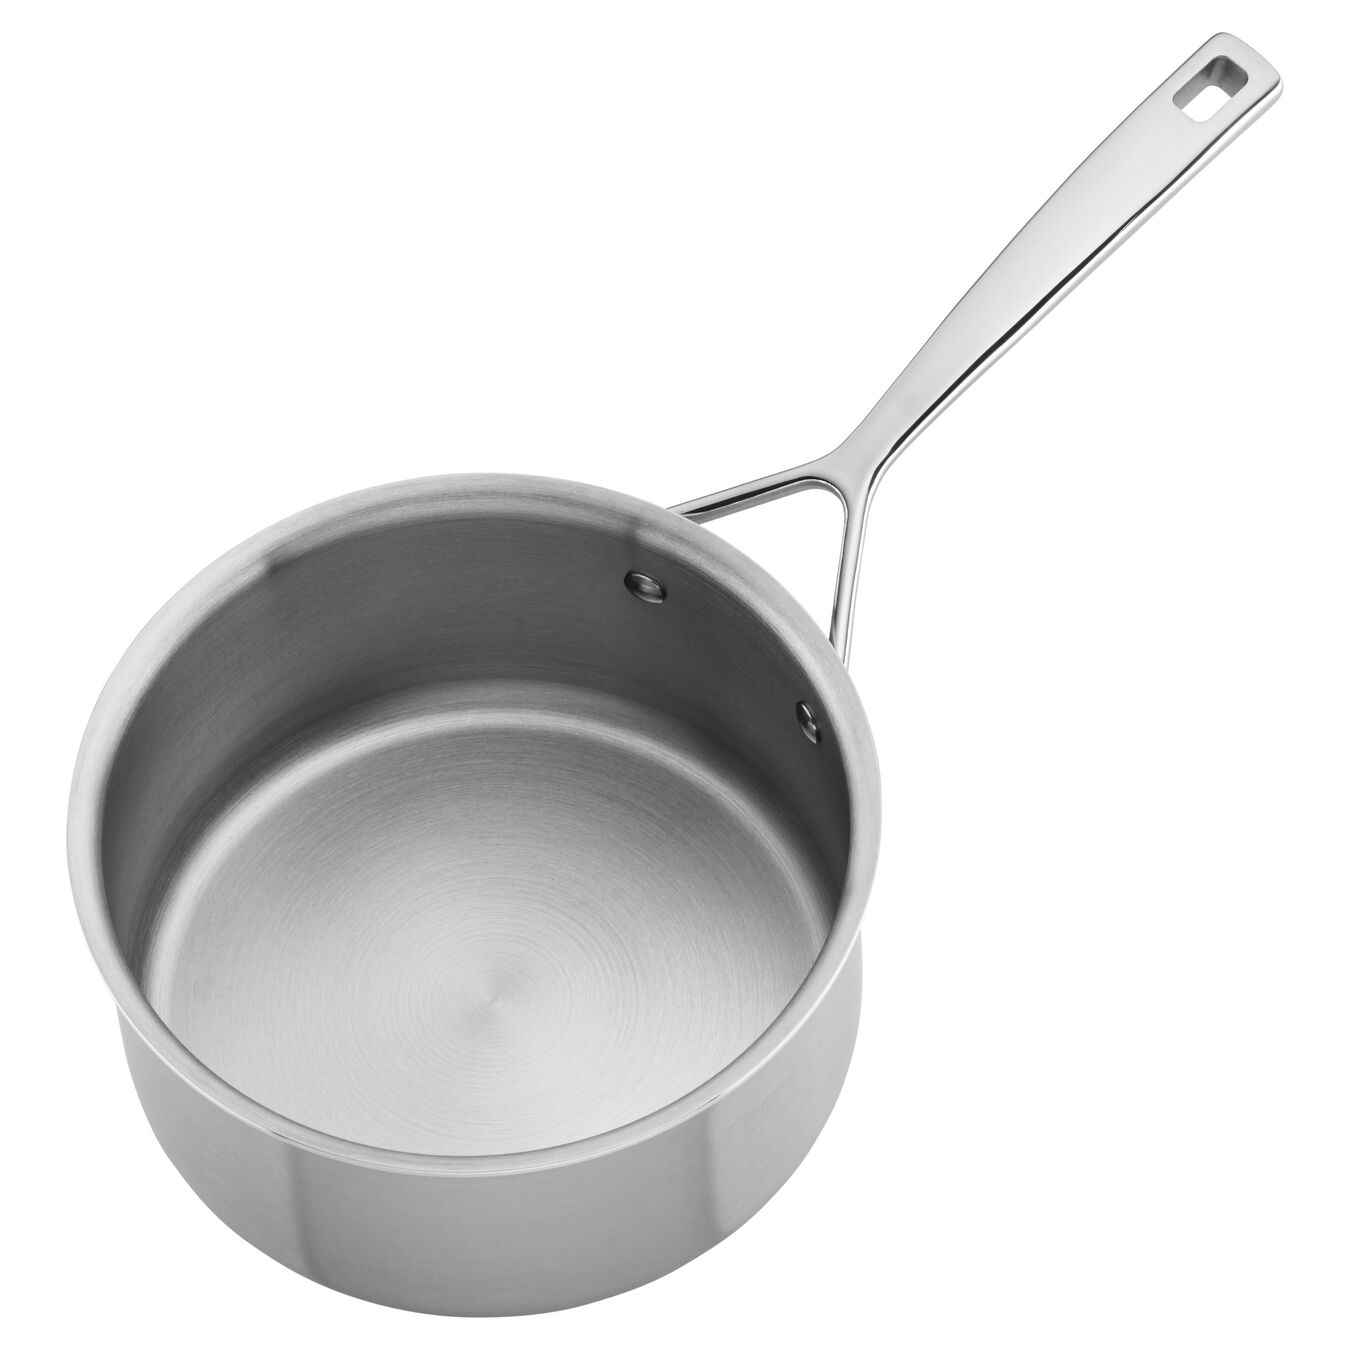 Stainless Steel 10 Piece Cookware Set,,large 6